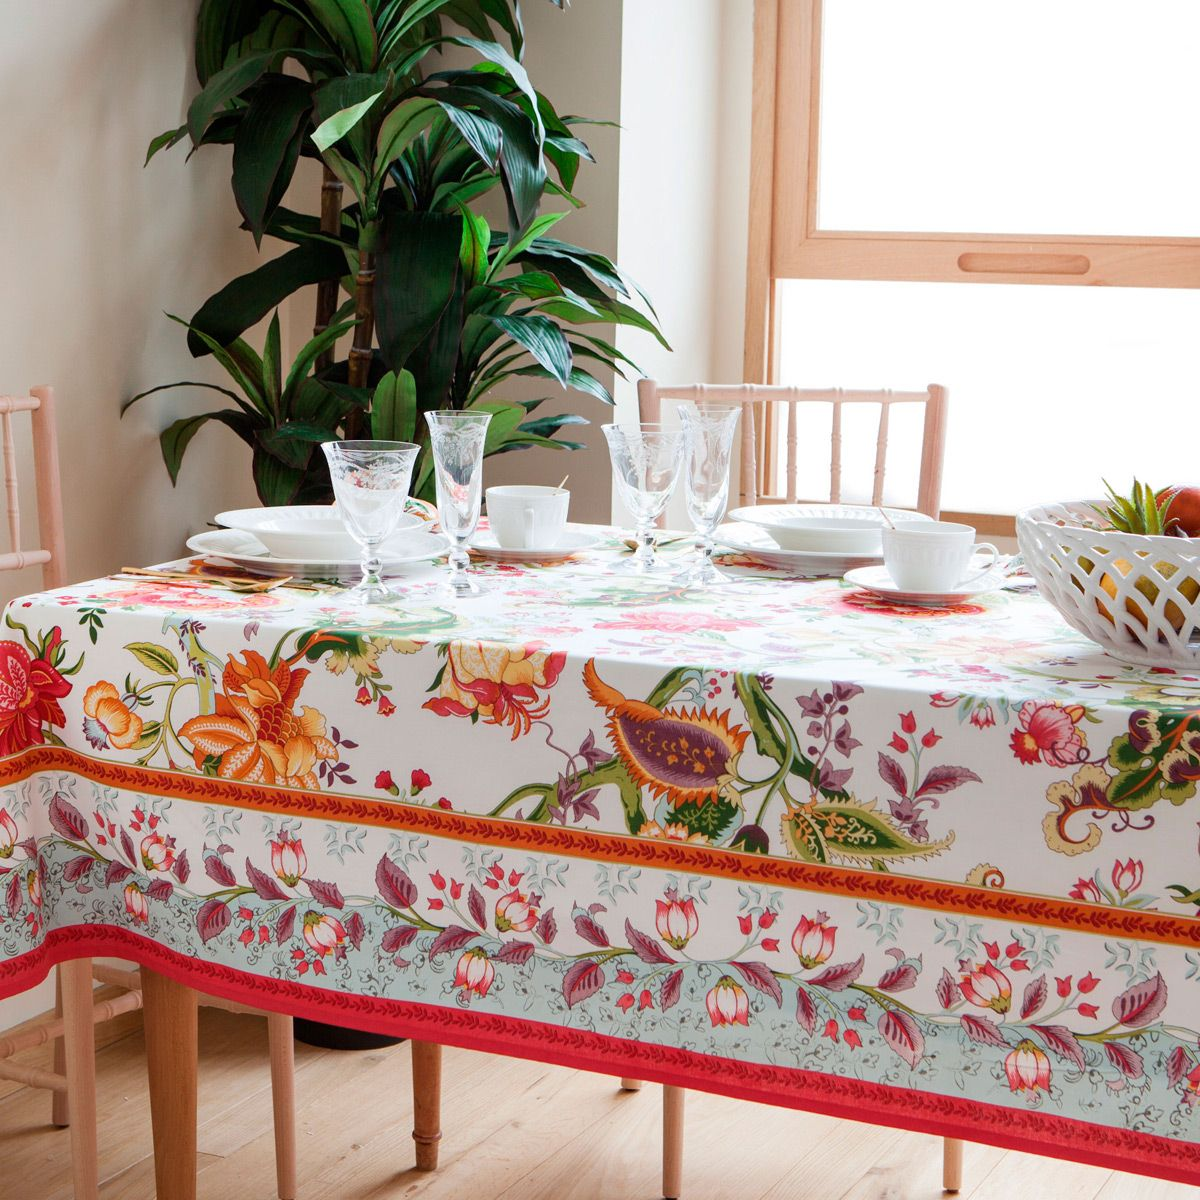 Genial Floral Cotton Tablecloth And Napkin, From £9.99, Zara Home